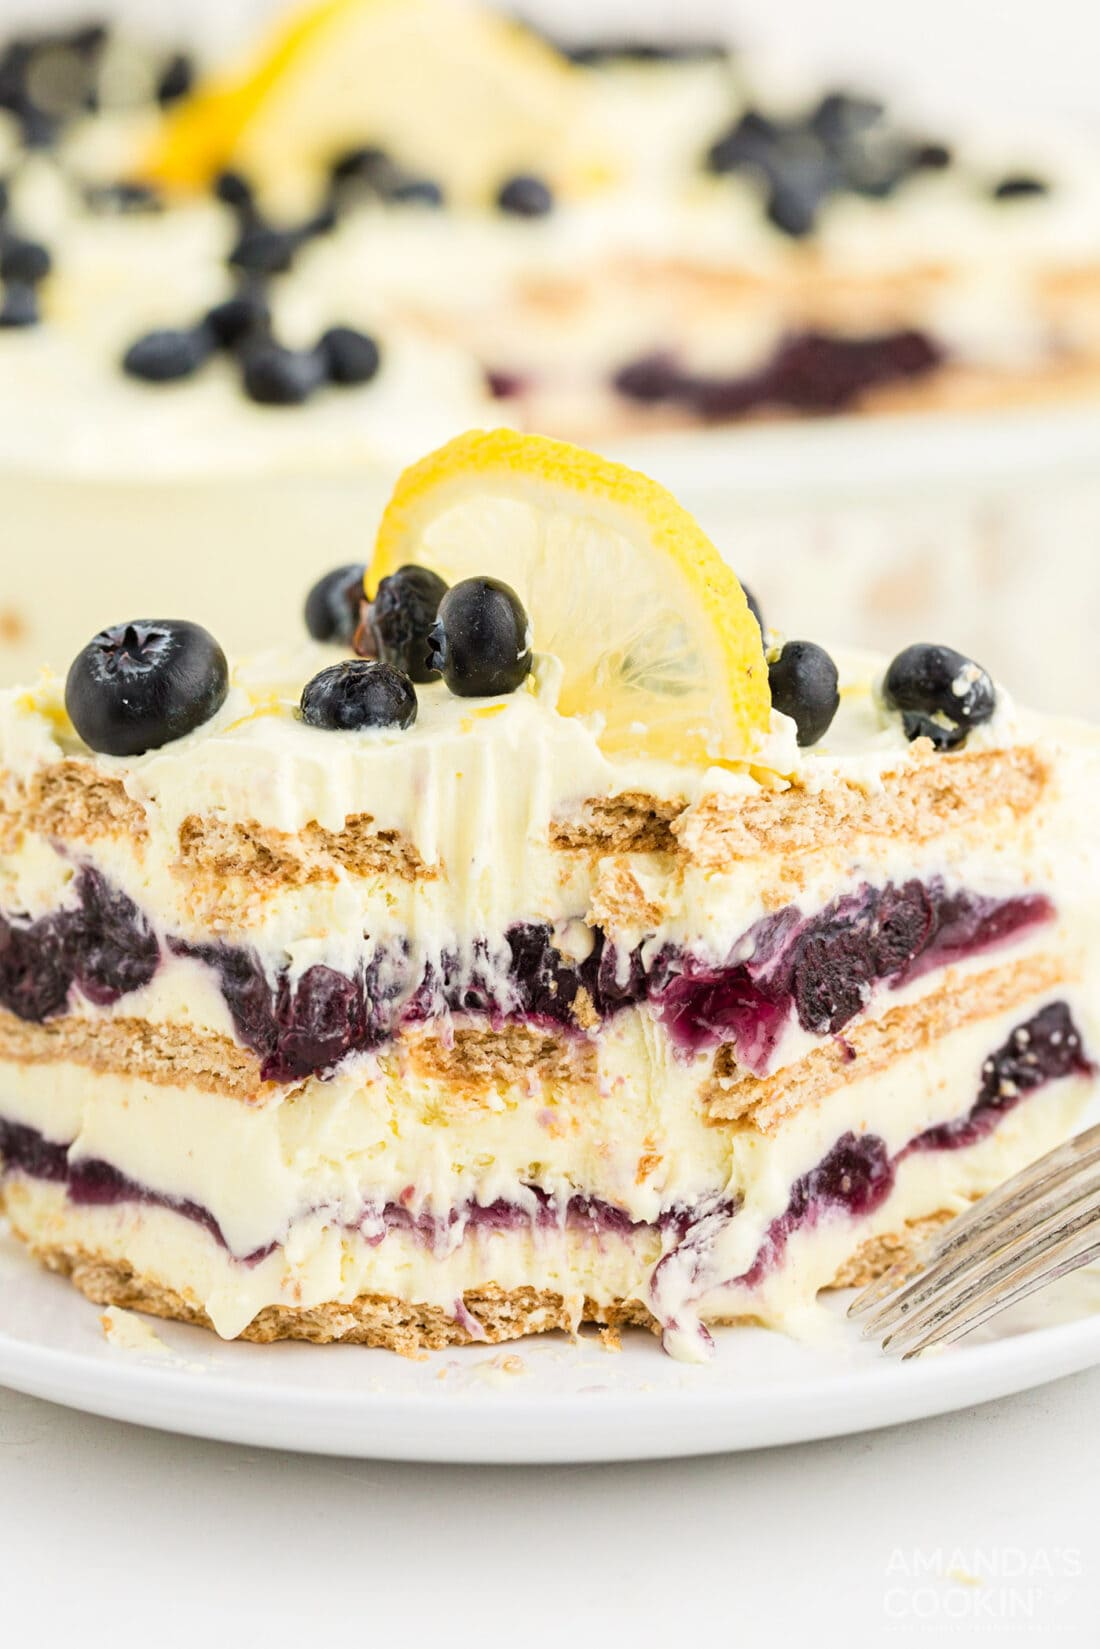 Lemon Blueberry Icebox Cake with a bite out of it